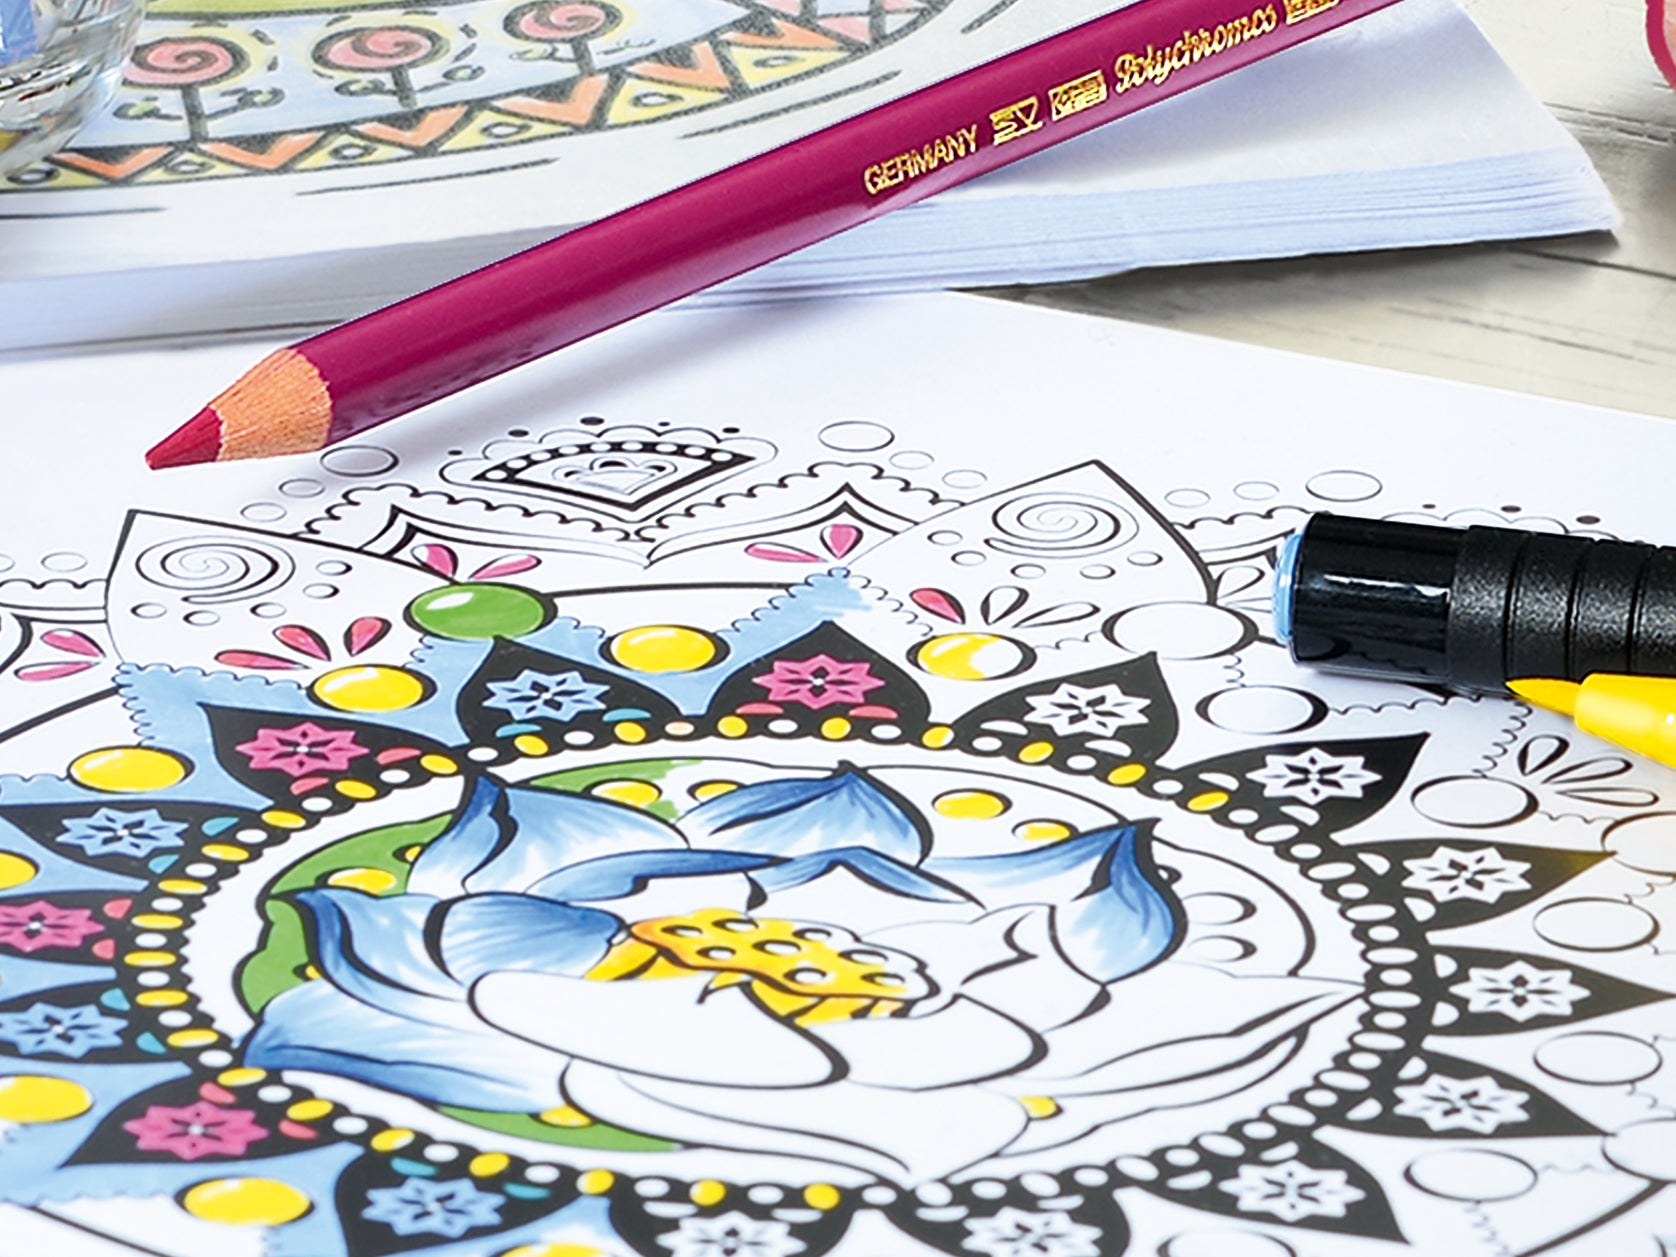 Adult colouring book craze prompts global pencil shortage